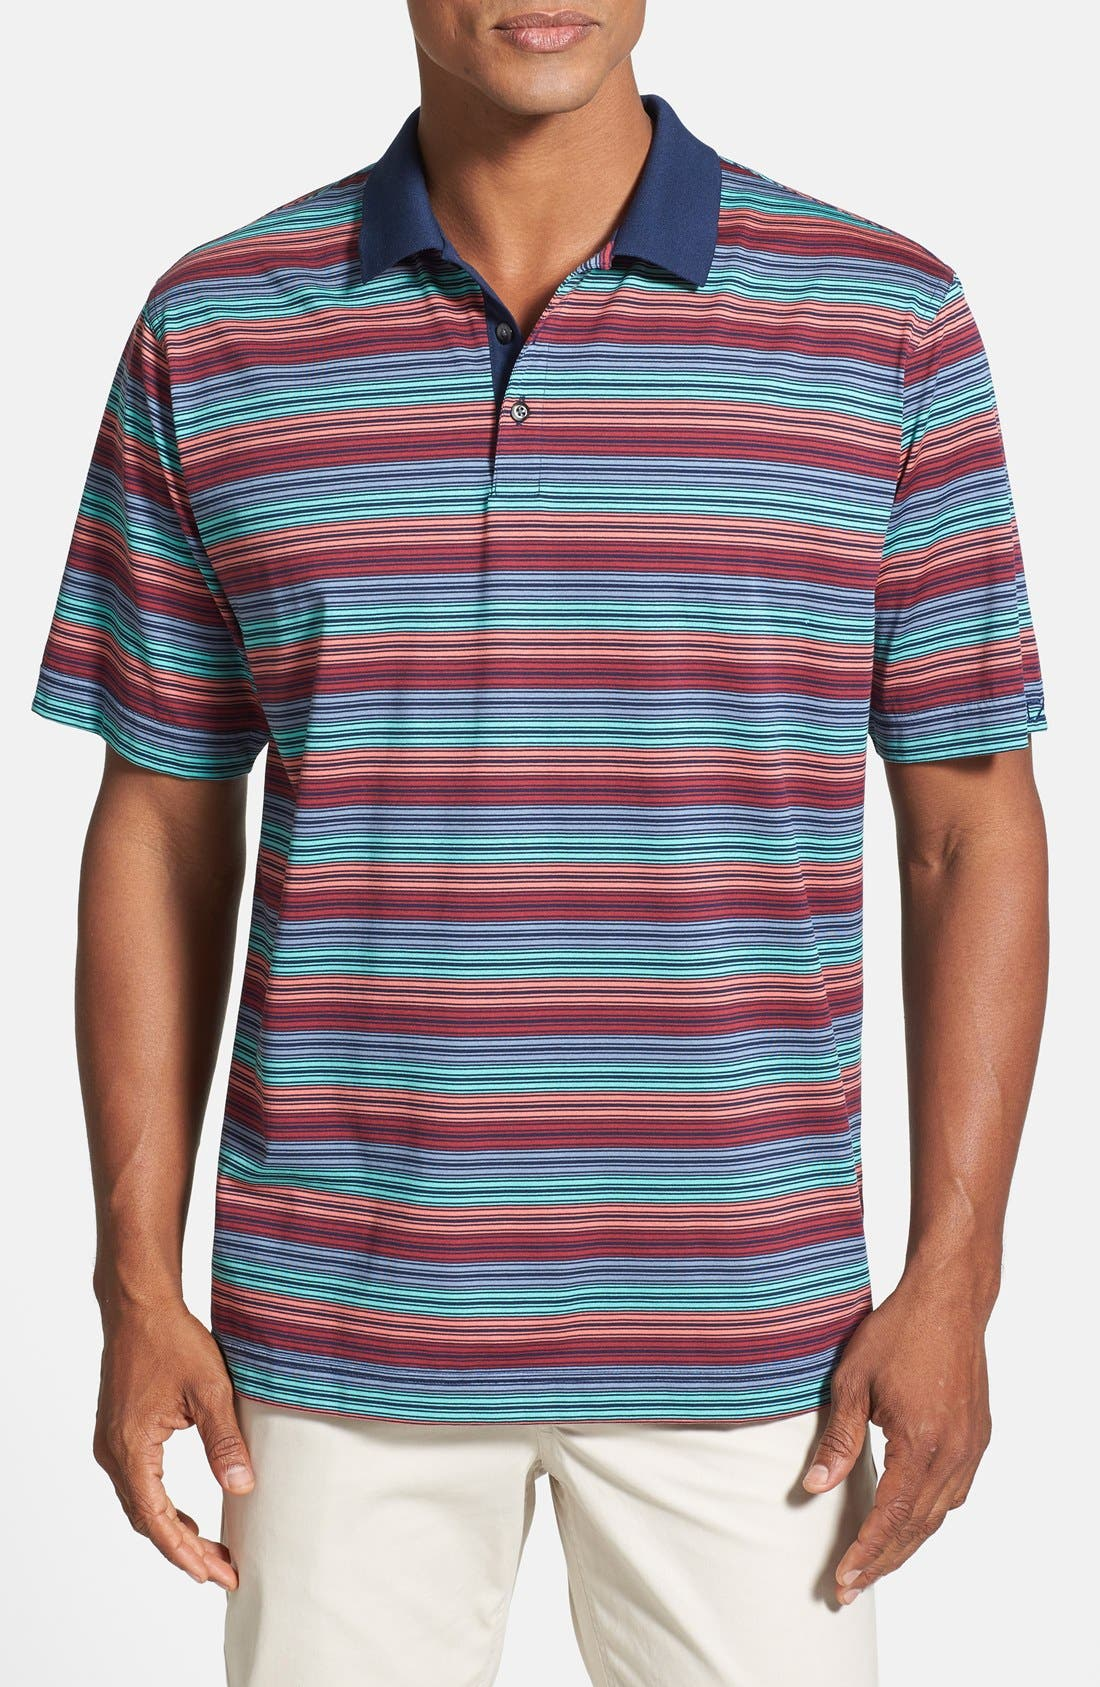 Alternate Image 1 Selected - Cutter & Buck '70/2's Andrew' Performance Stripe Polo